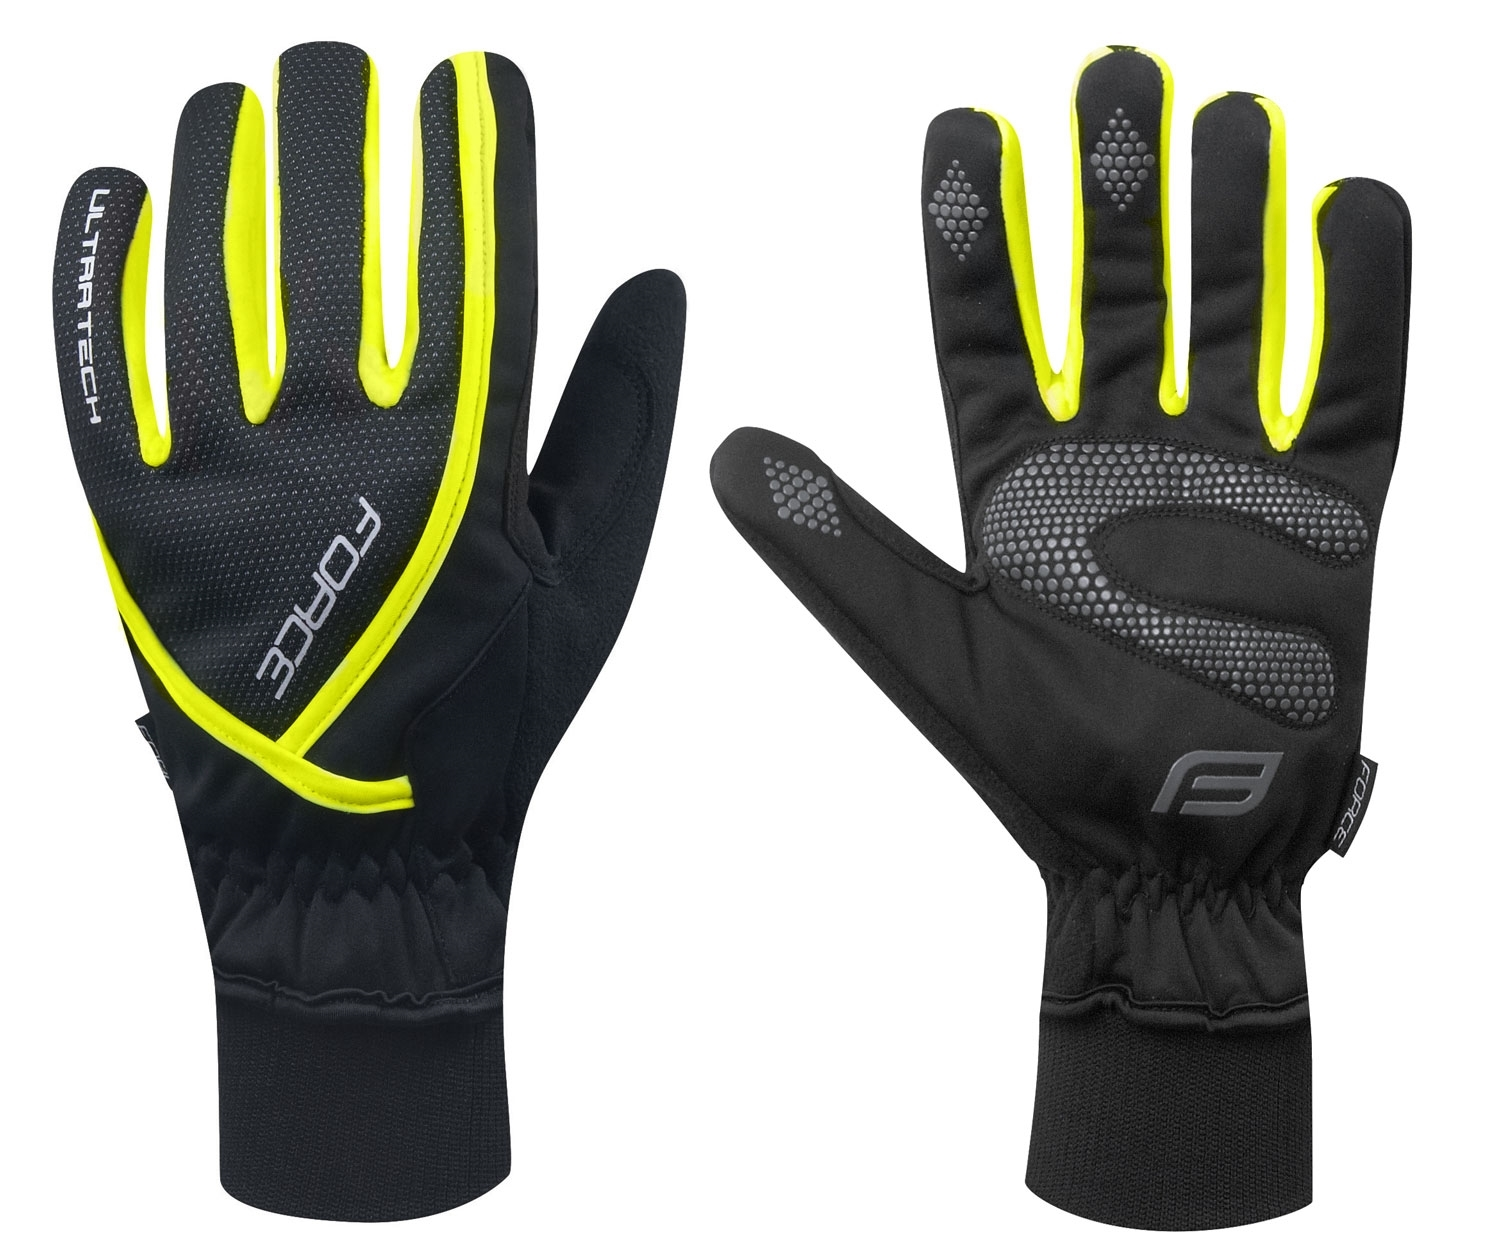 rukavice zimní FORCE ULTRA TECH, fluo XL